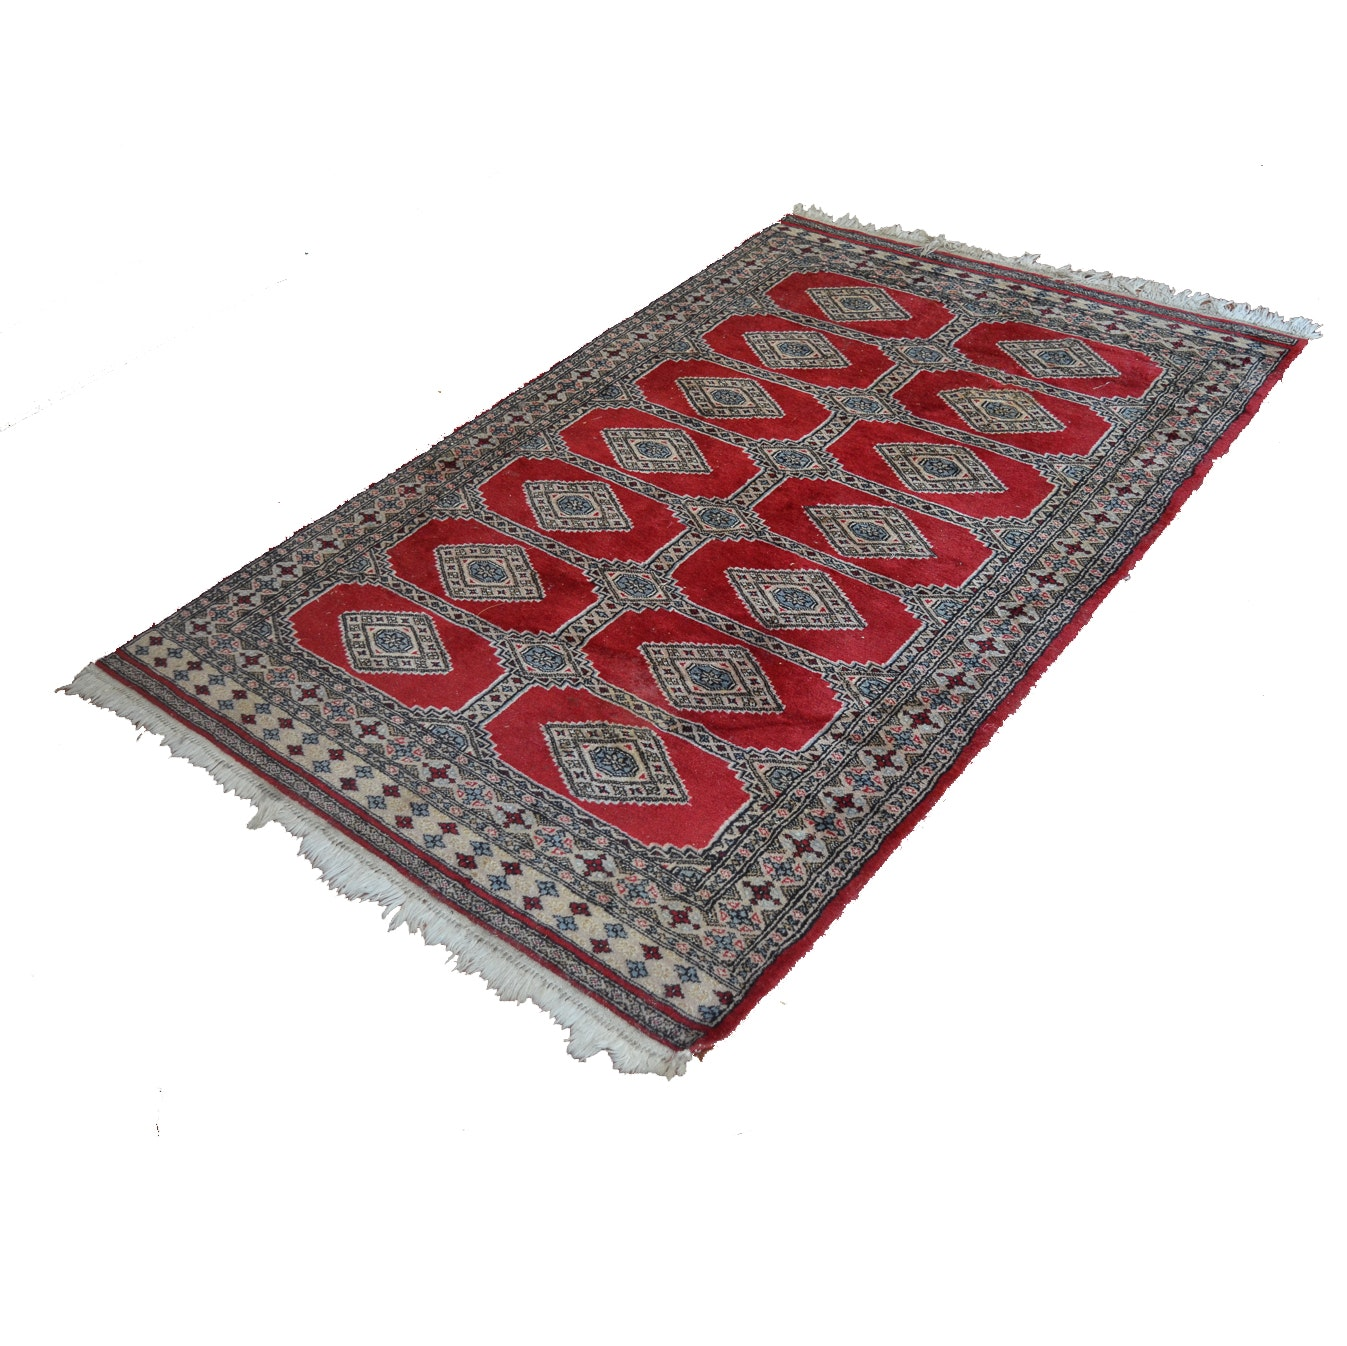 Hand-Knotted Pakistani Rug from IKEA